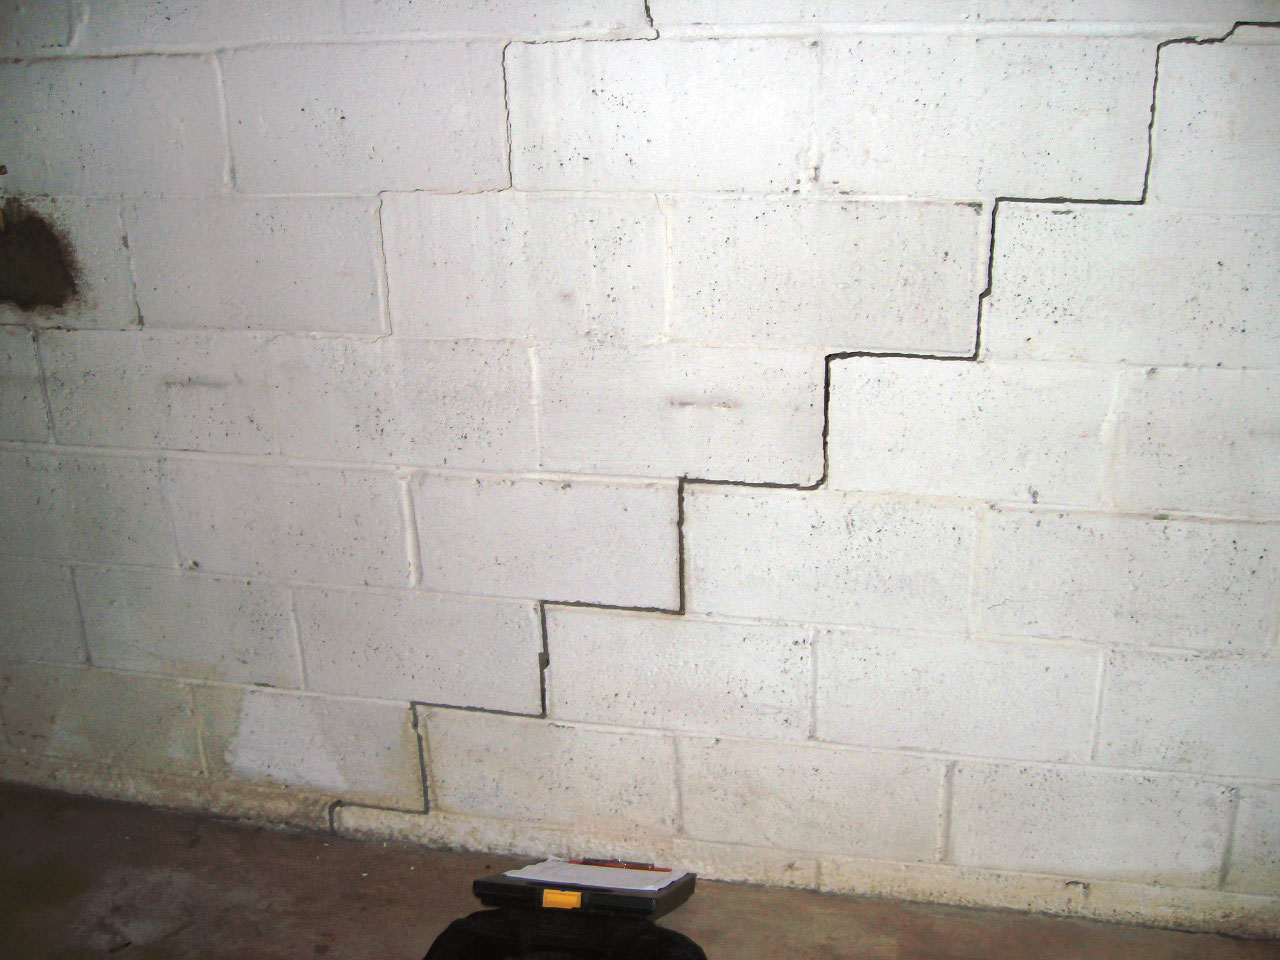 Quality 1st Basement Systems offers a variety of foundation repairs to ensure that your home maintains its safety, foundation, and...